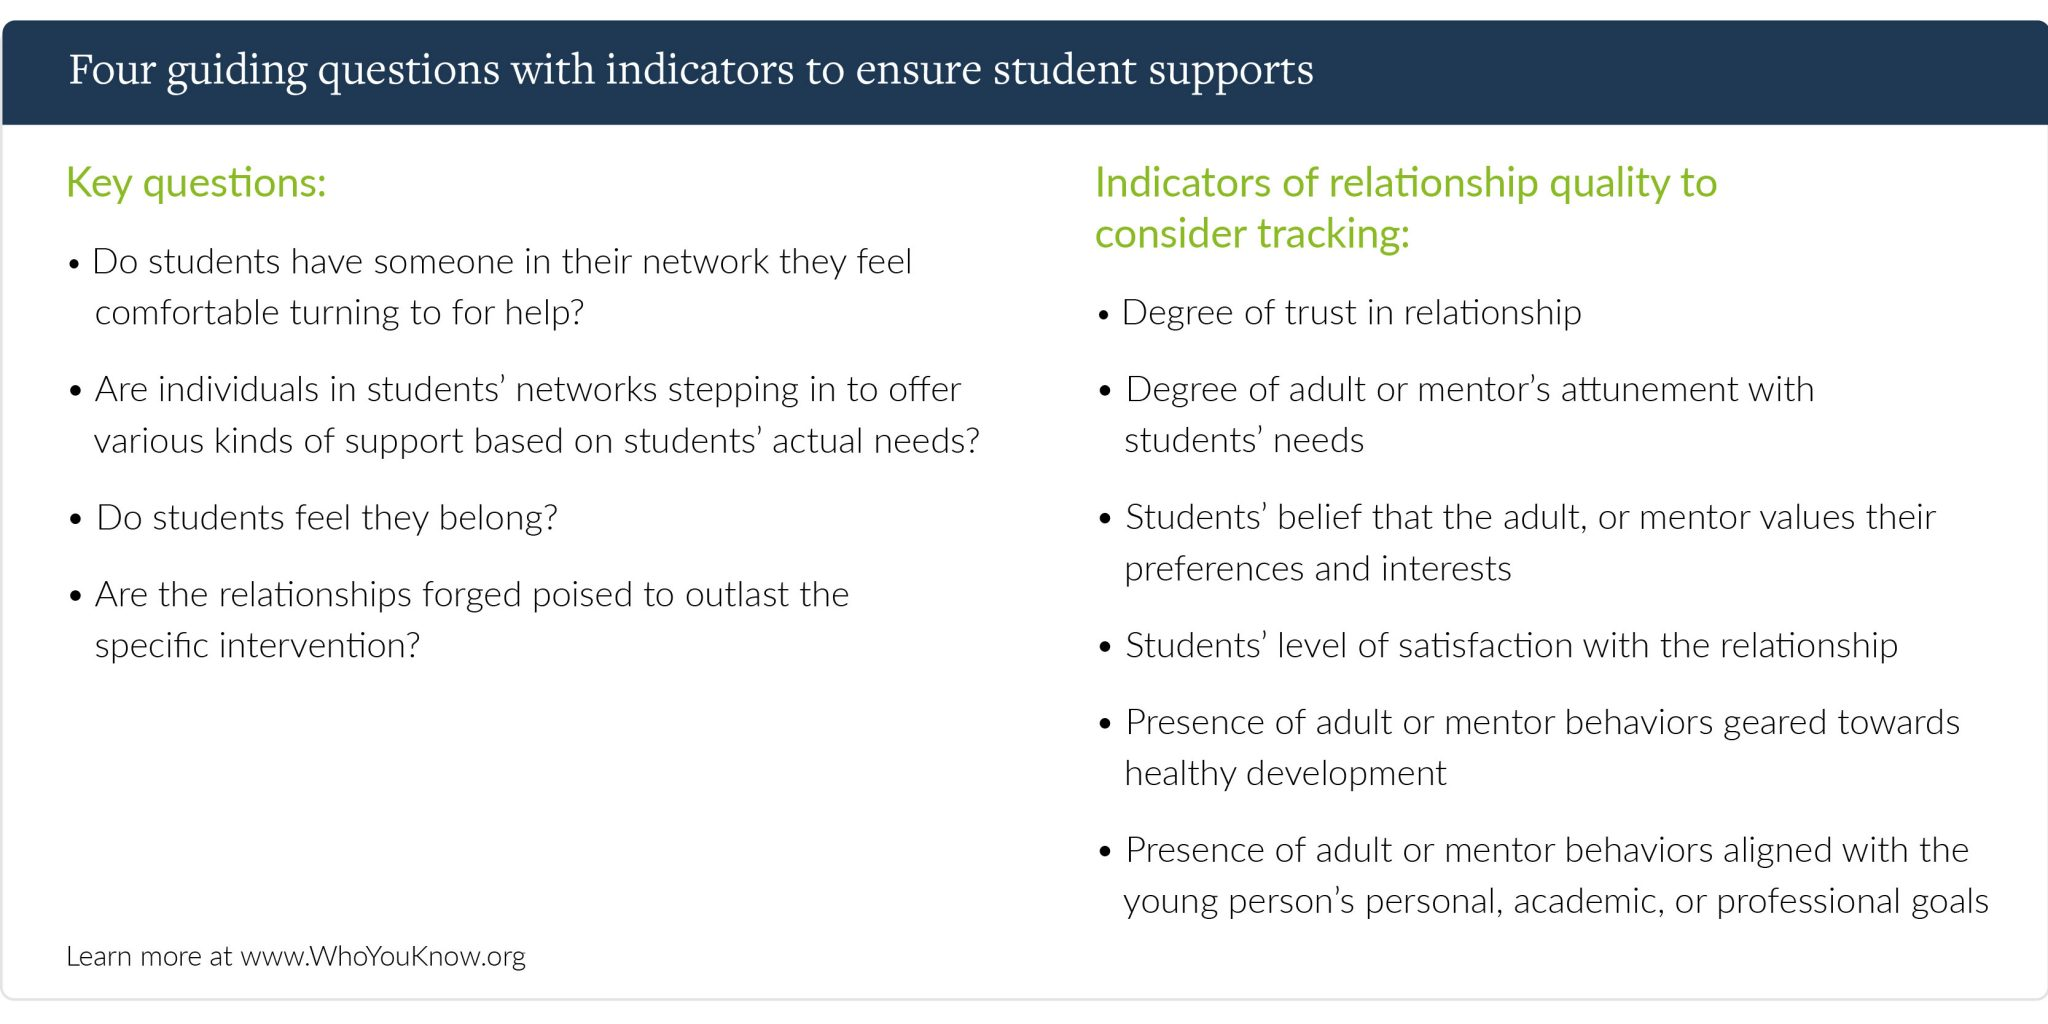 Are the kids OK? Four guiding questions—and metrics—to help ensure student well-being.